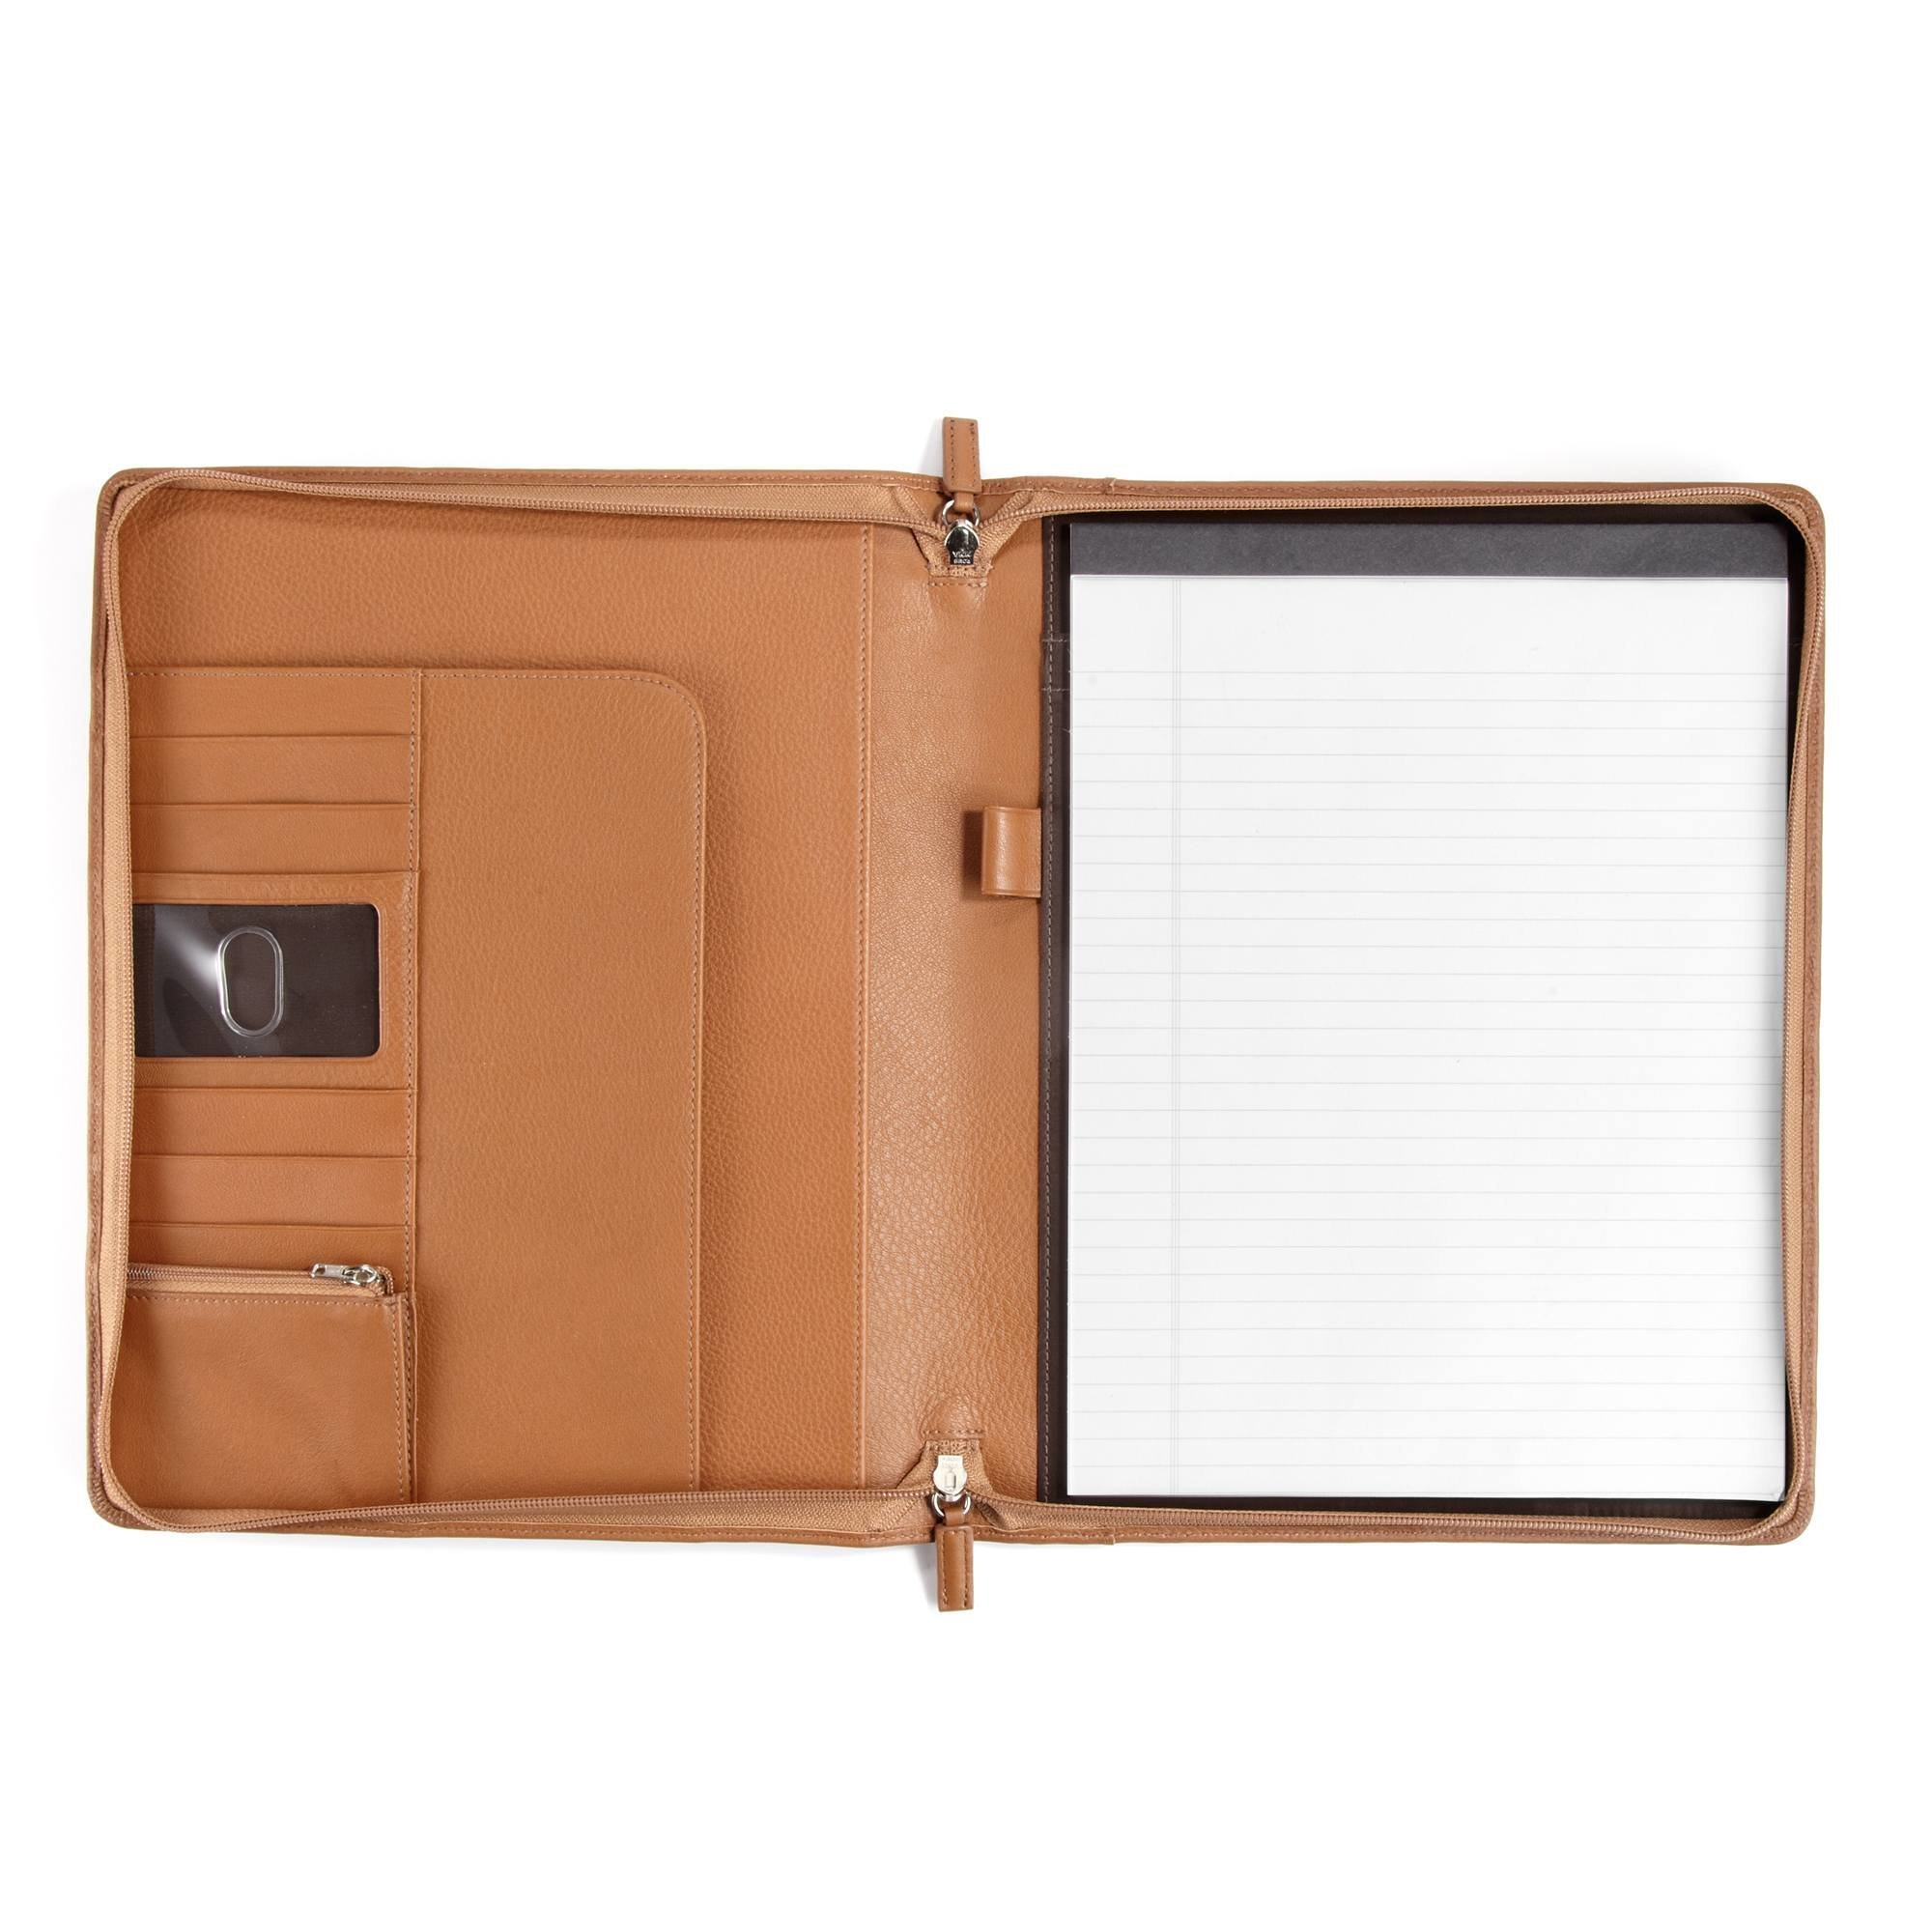 Leatherology Classic Zippered Padfolio - Full Grain Leather - Cognac (brown)